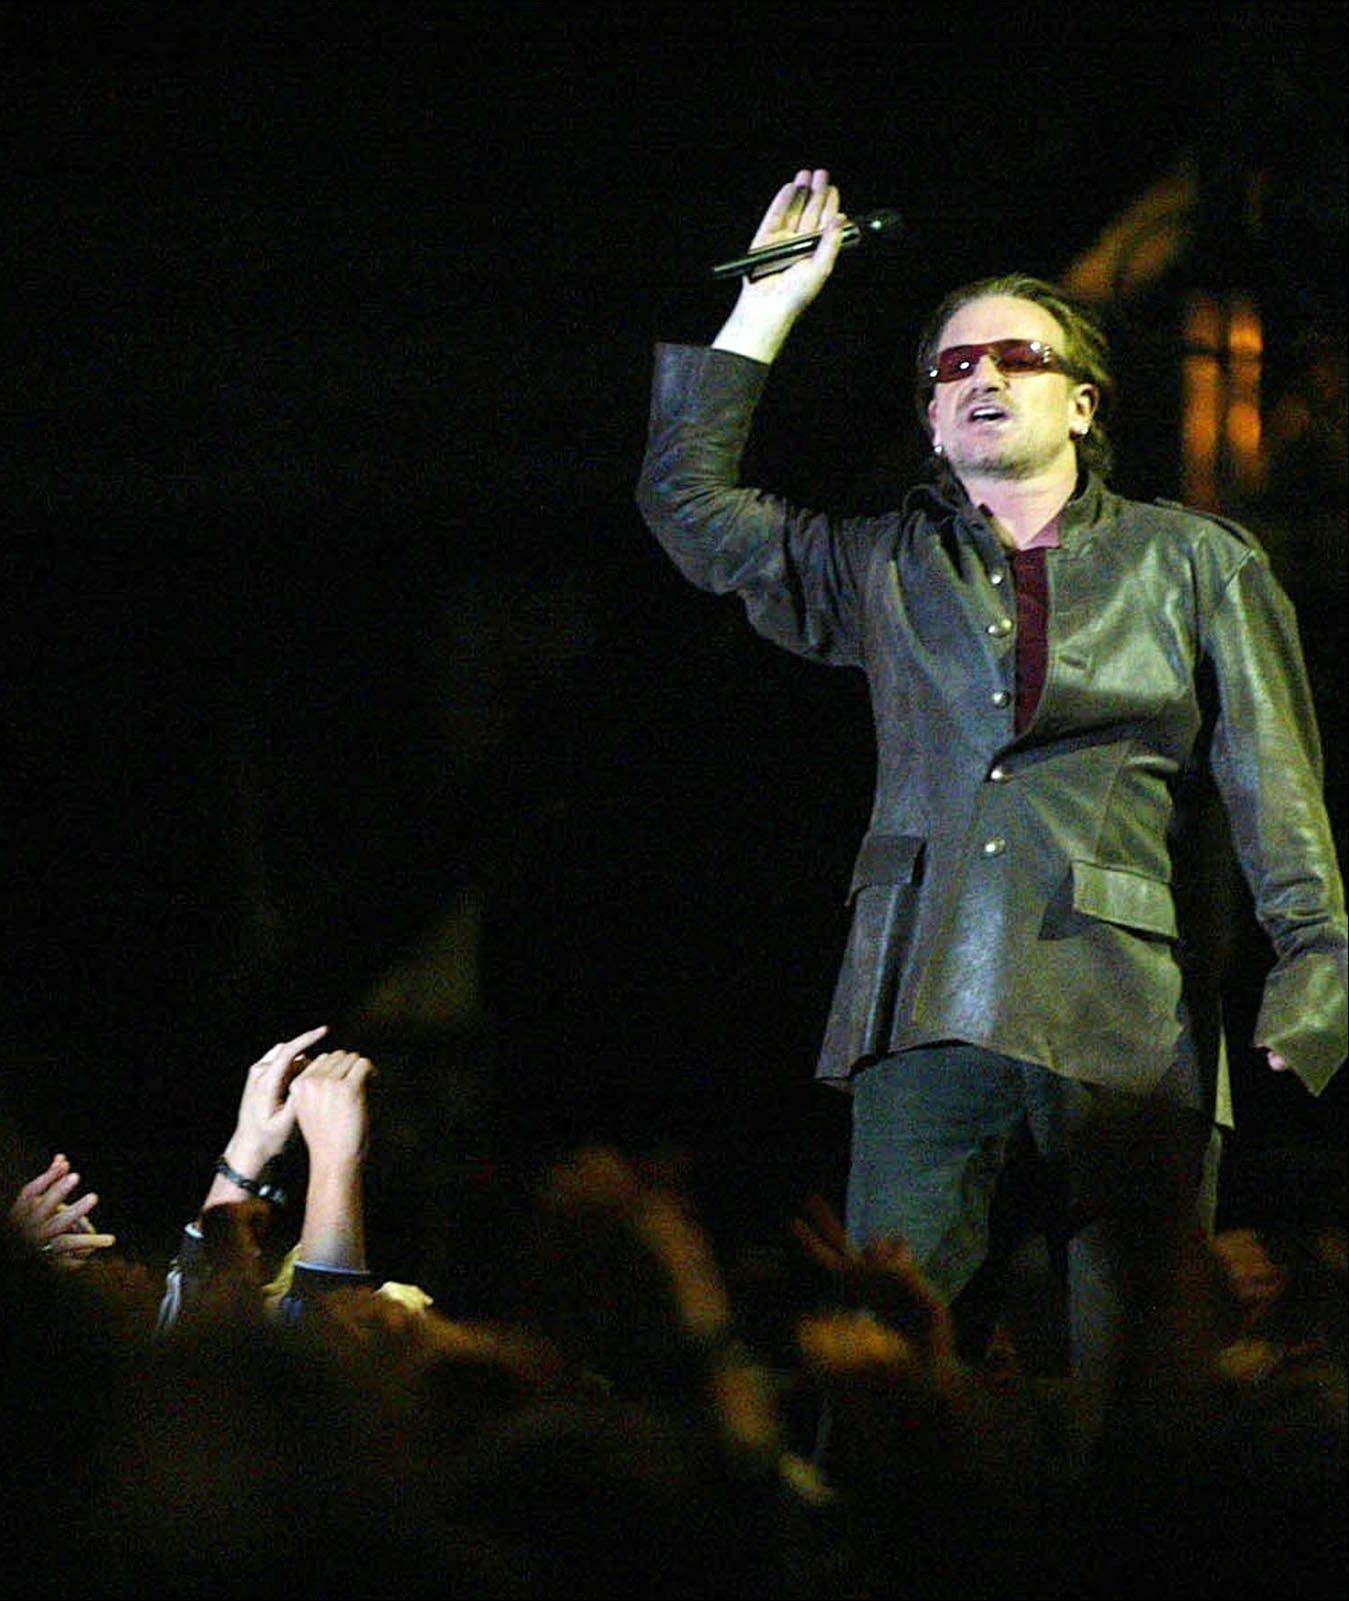 Bono, lead singer from the rock group U2, performs at the Nelson Mandela AIDS Benefit Concert in Cape Town, South Africa, Saturday Nov. 29, 2003. He will be recognized for his humanitarian work at an awards dinner hosted by the family of the Rev. Martin Luther King Jr. Bono will be honored at the 2004 King Center ``Salute to Greatness'' awards dinner on Jan. 17 in Atlanta.